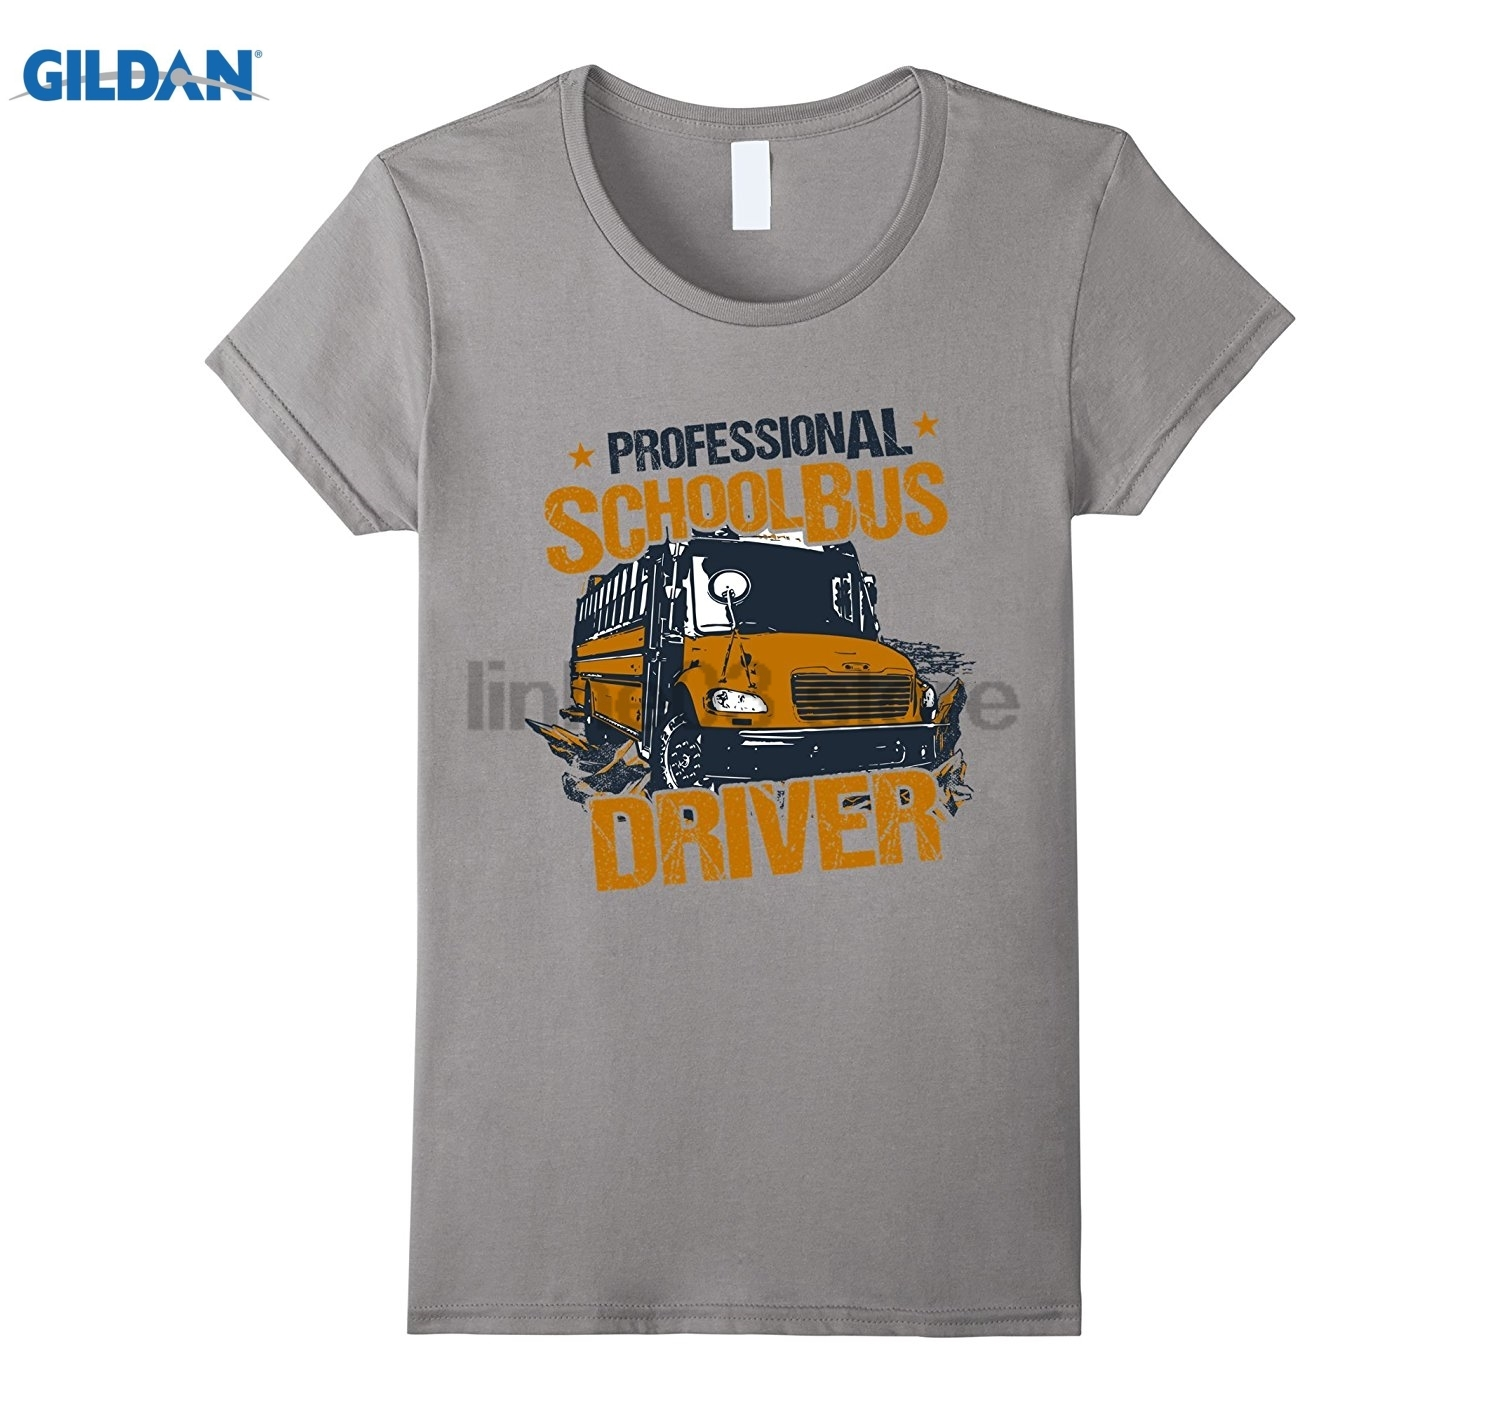 GILDAN T-Shirt Professional School Bus Driver Wild Vintage Look Hot Womens T-shirt Mothers Day Ms. T-shirt